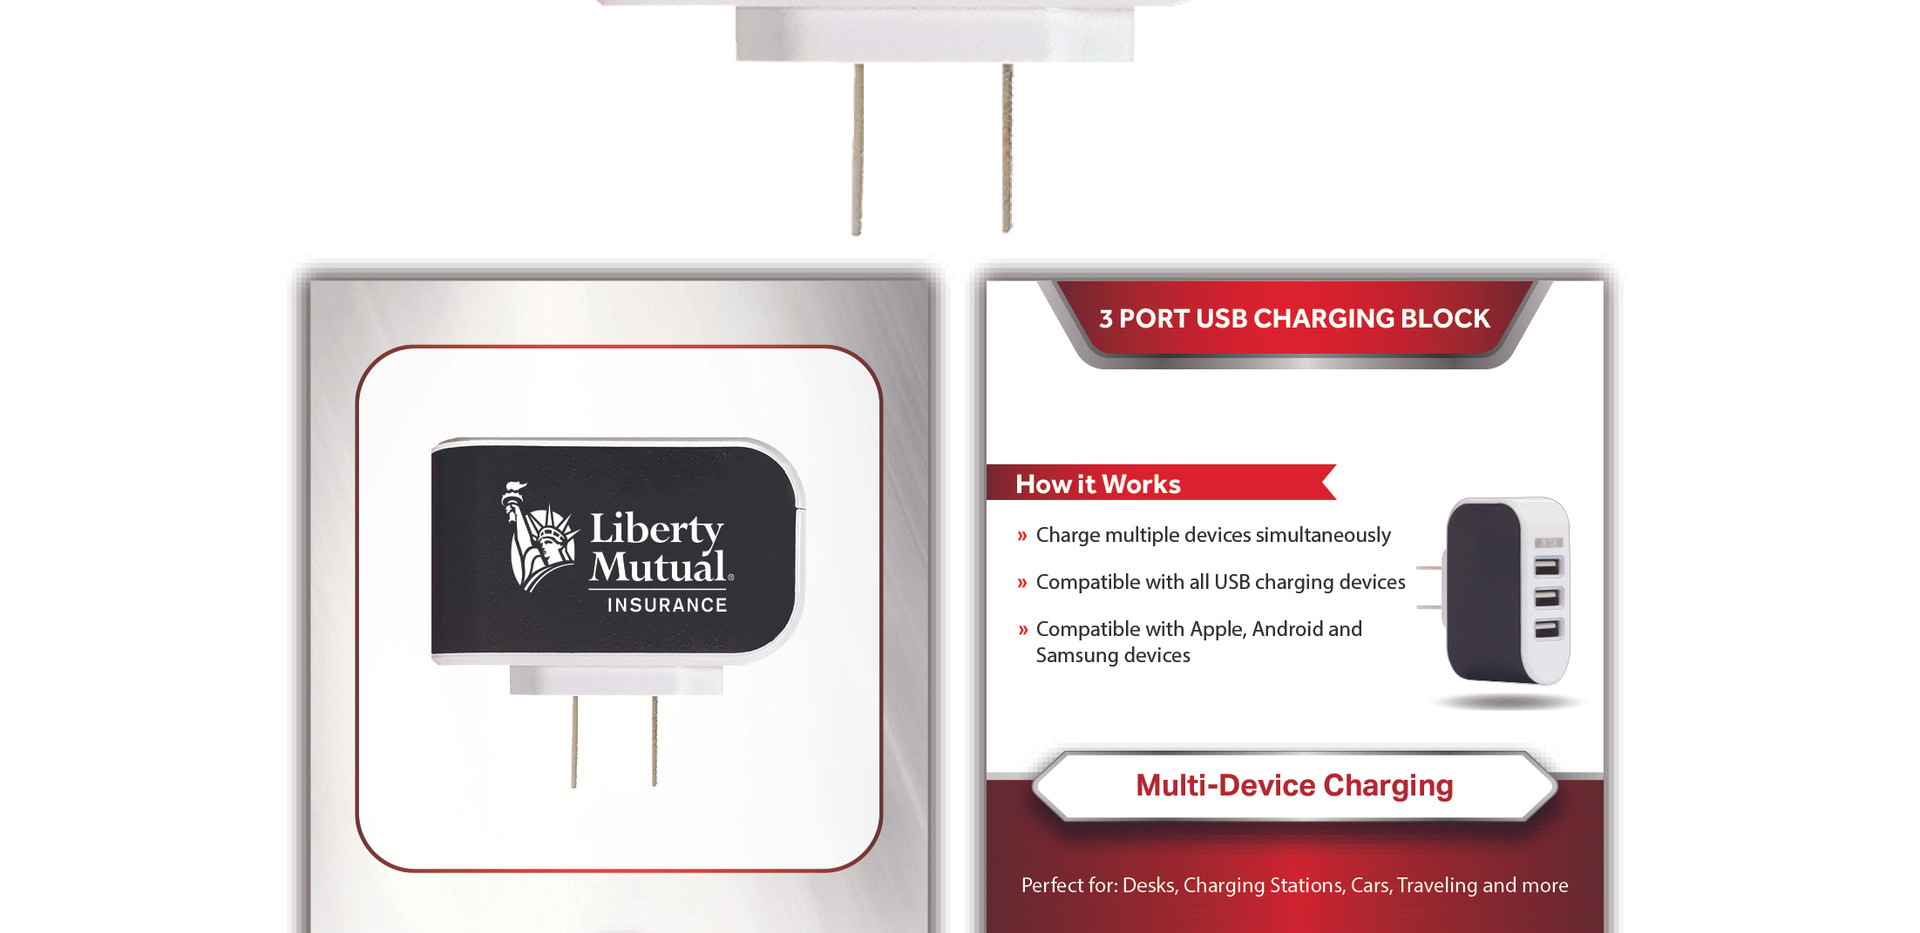 Liberty Mutual 3 Port Charging Block sta